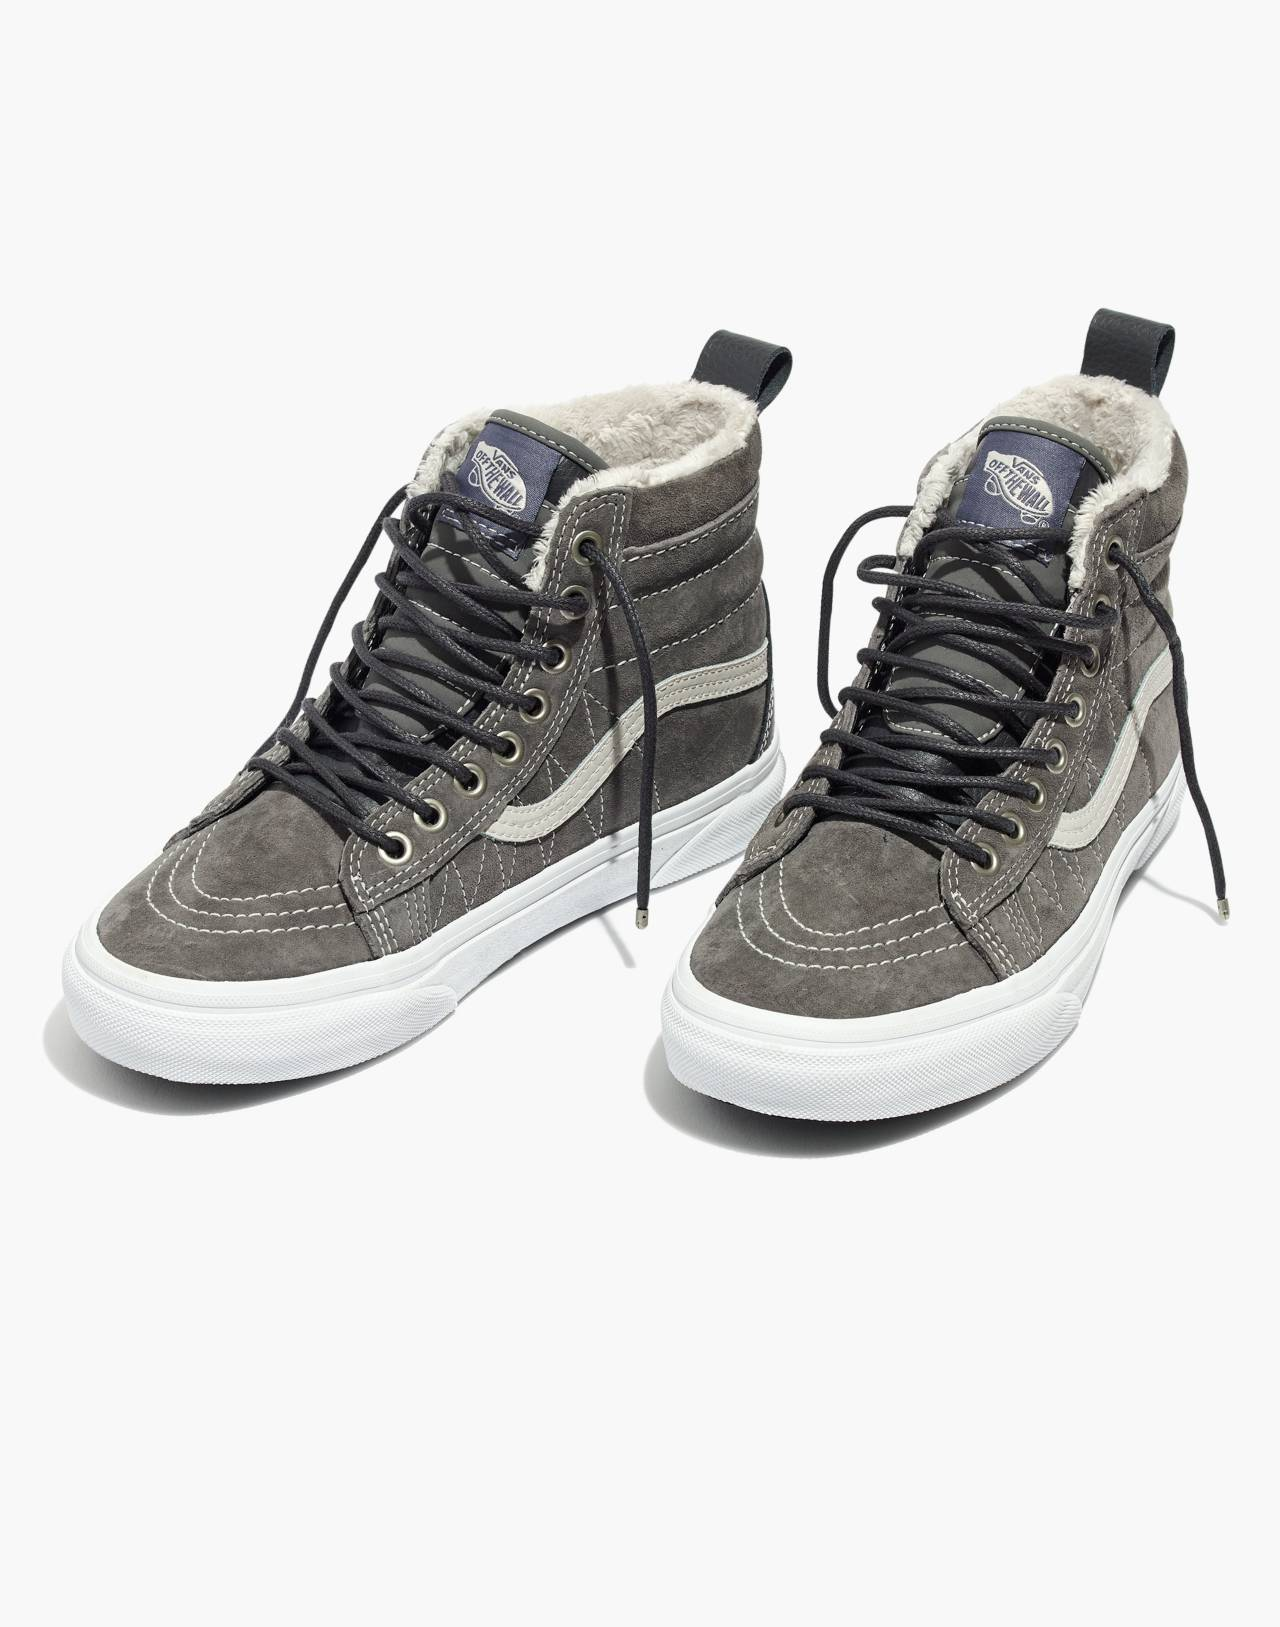 Vans® Unisex Sk8-Hi MTE High-Top Sneakers in Suede in pewter asphalt image 1